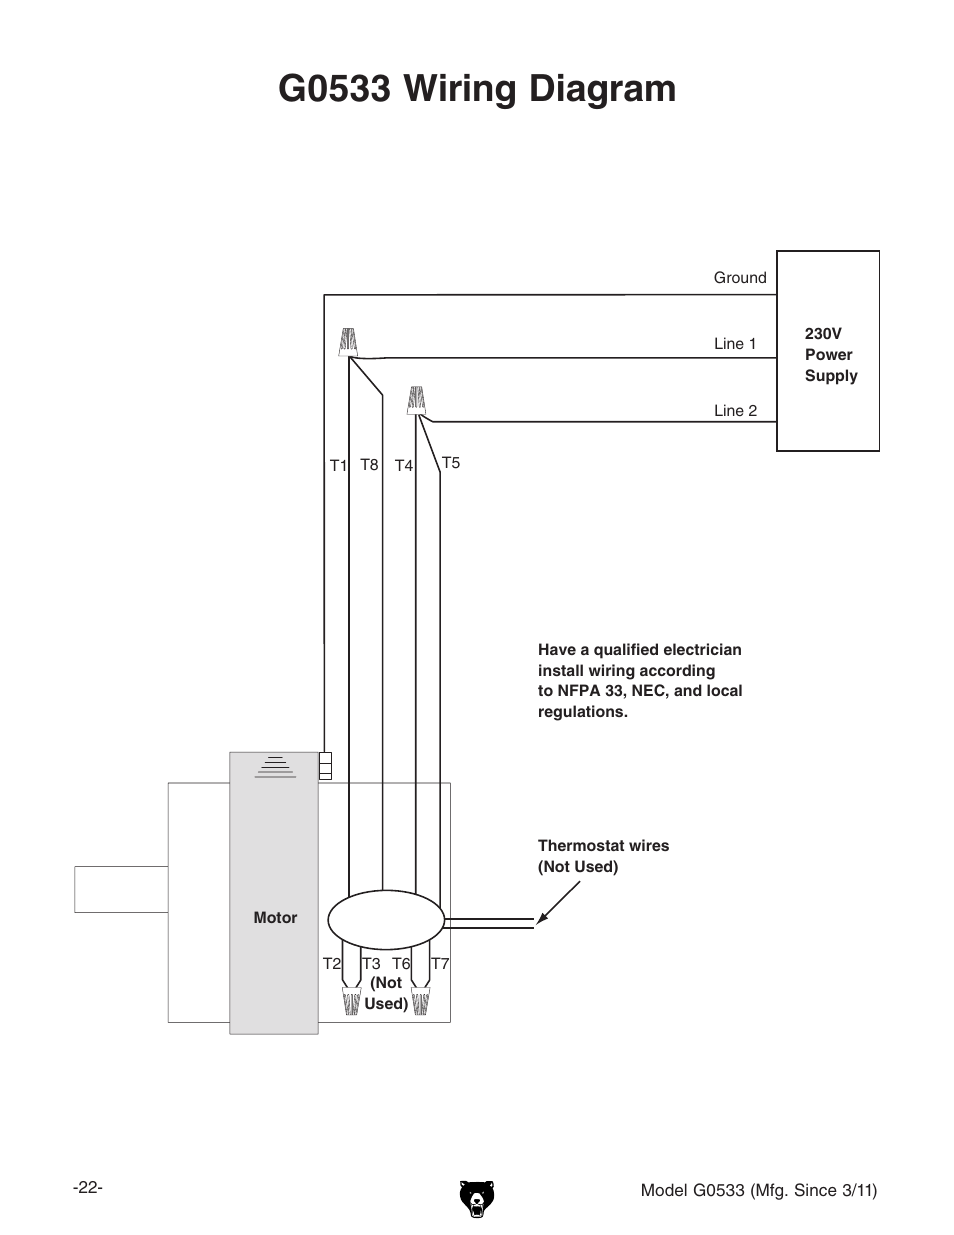 g0533 wiring diagram grizzly 3hp dry spray booth g0533 user manual Truck Wiring Diagram g0533 wiring diagram grizzly 3hp dry spray booth g0533 user manual page 24